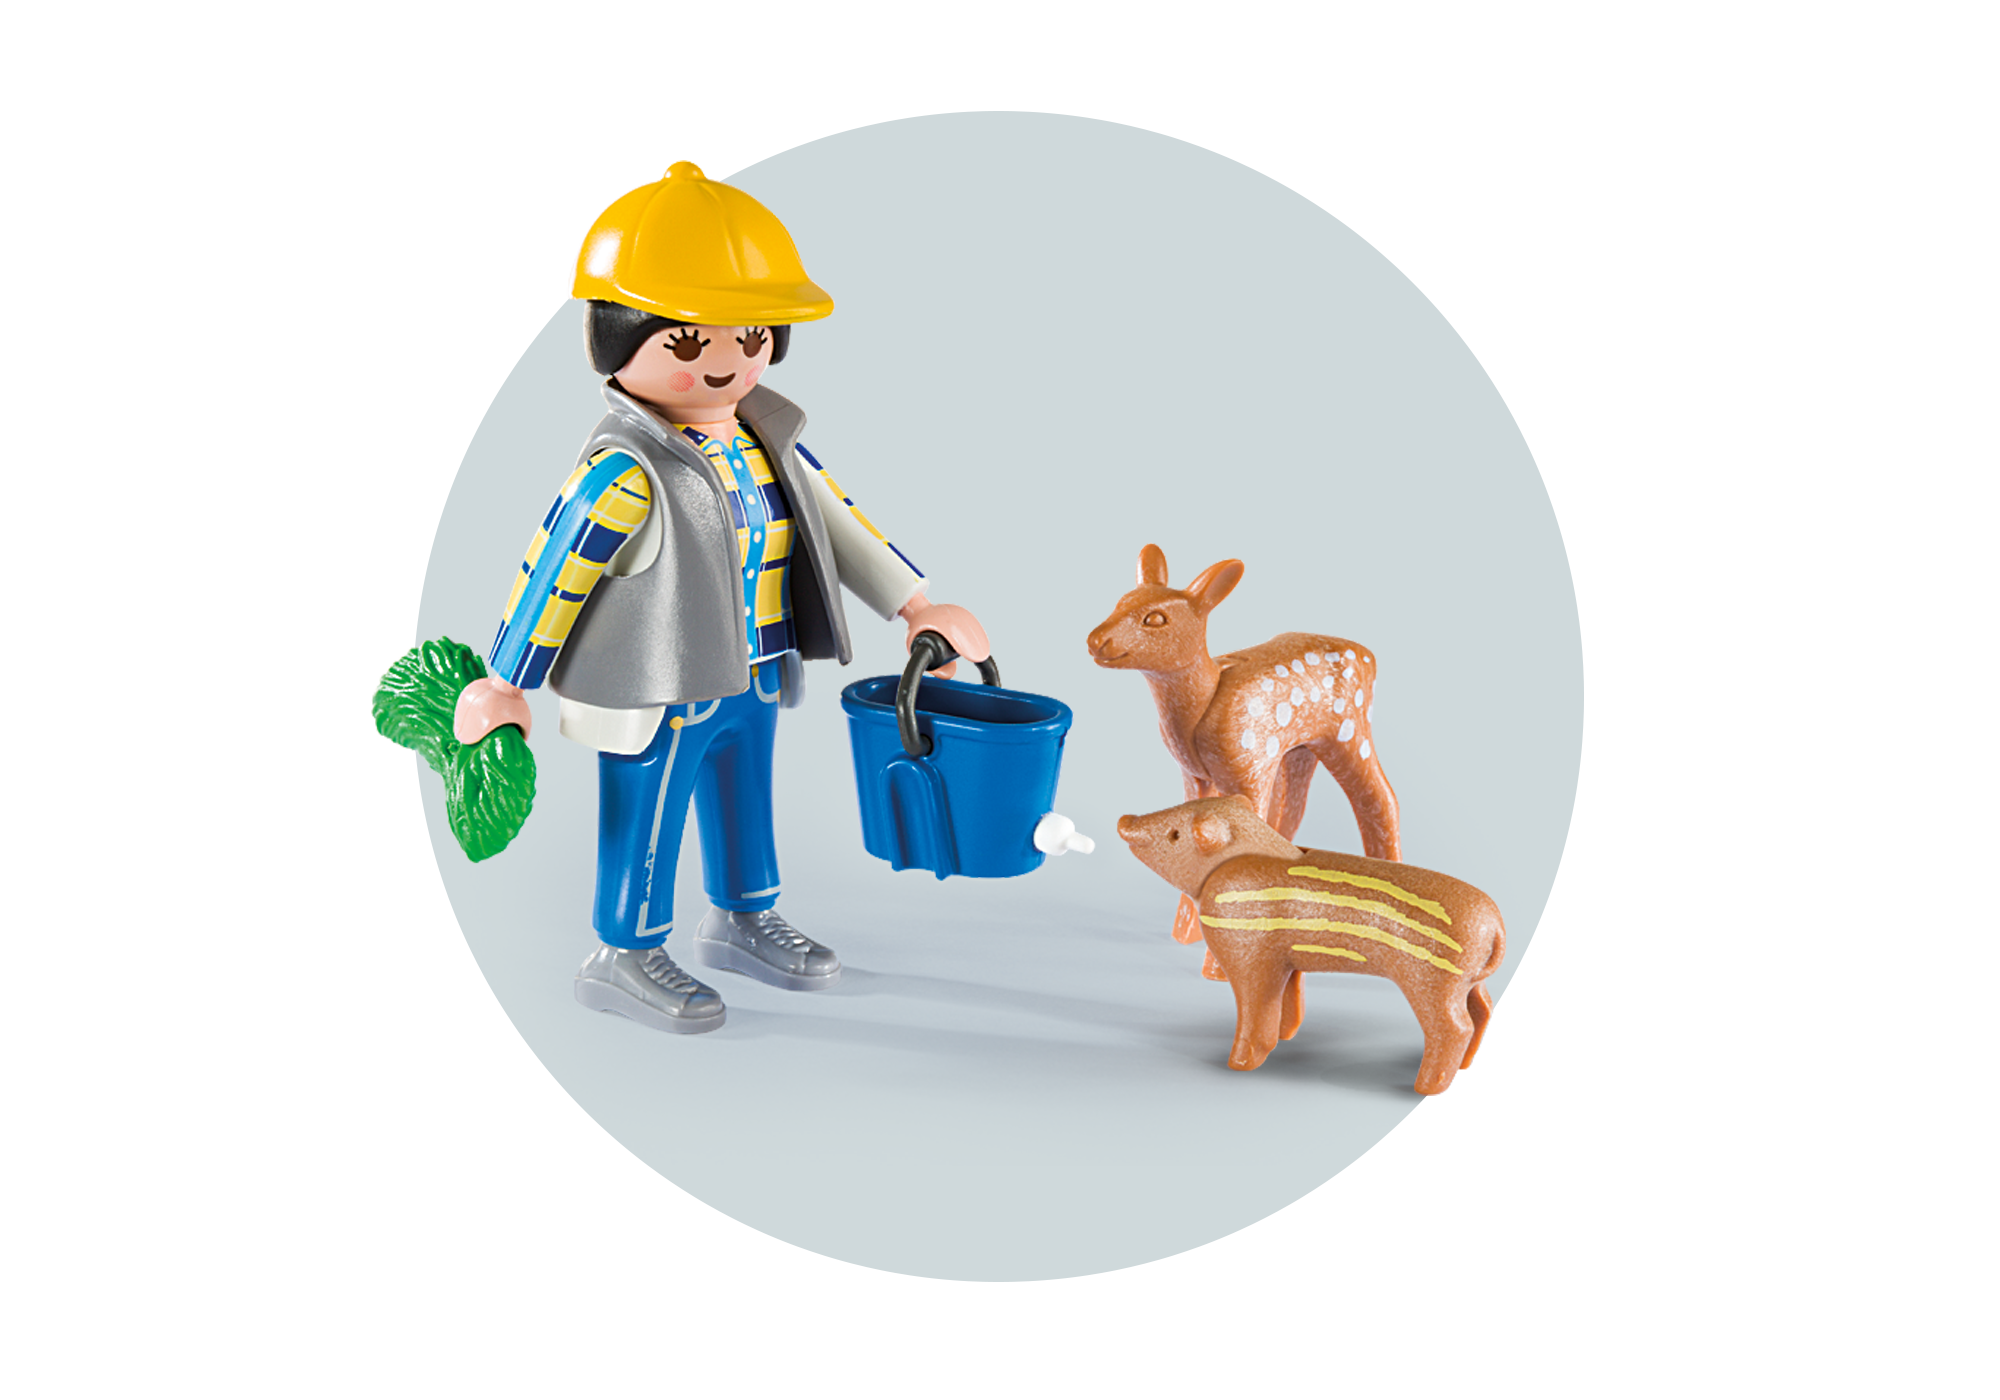 http://media.playmobil.com/i/playmobil/6158_product_extra2